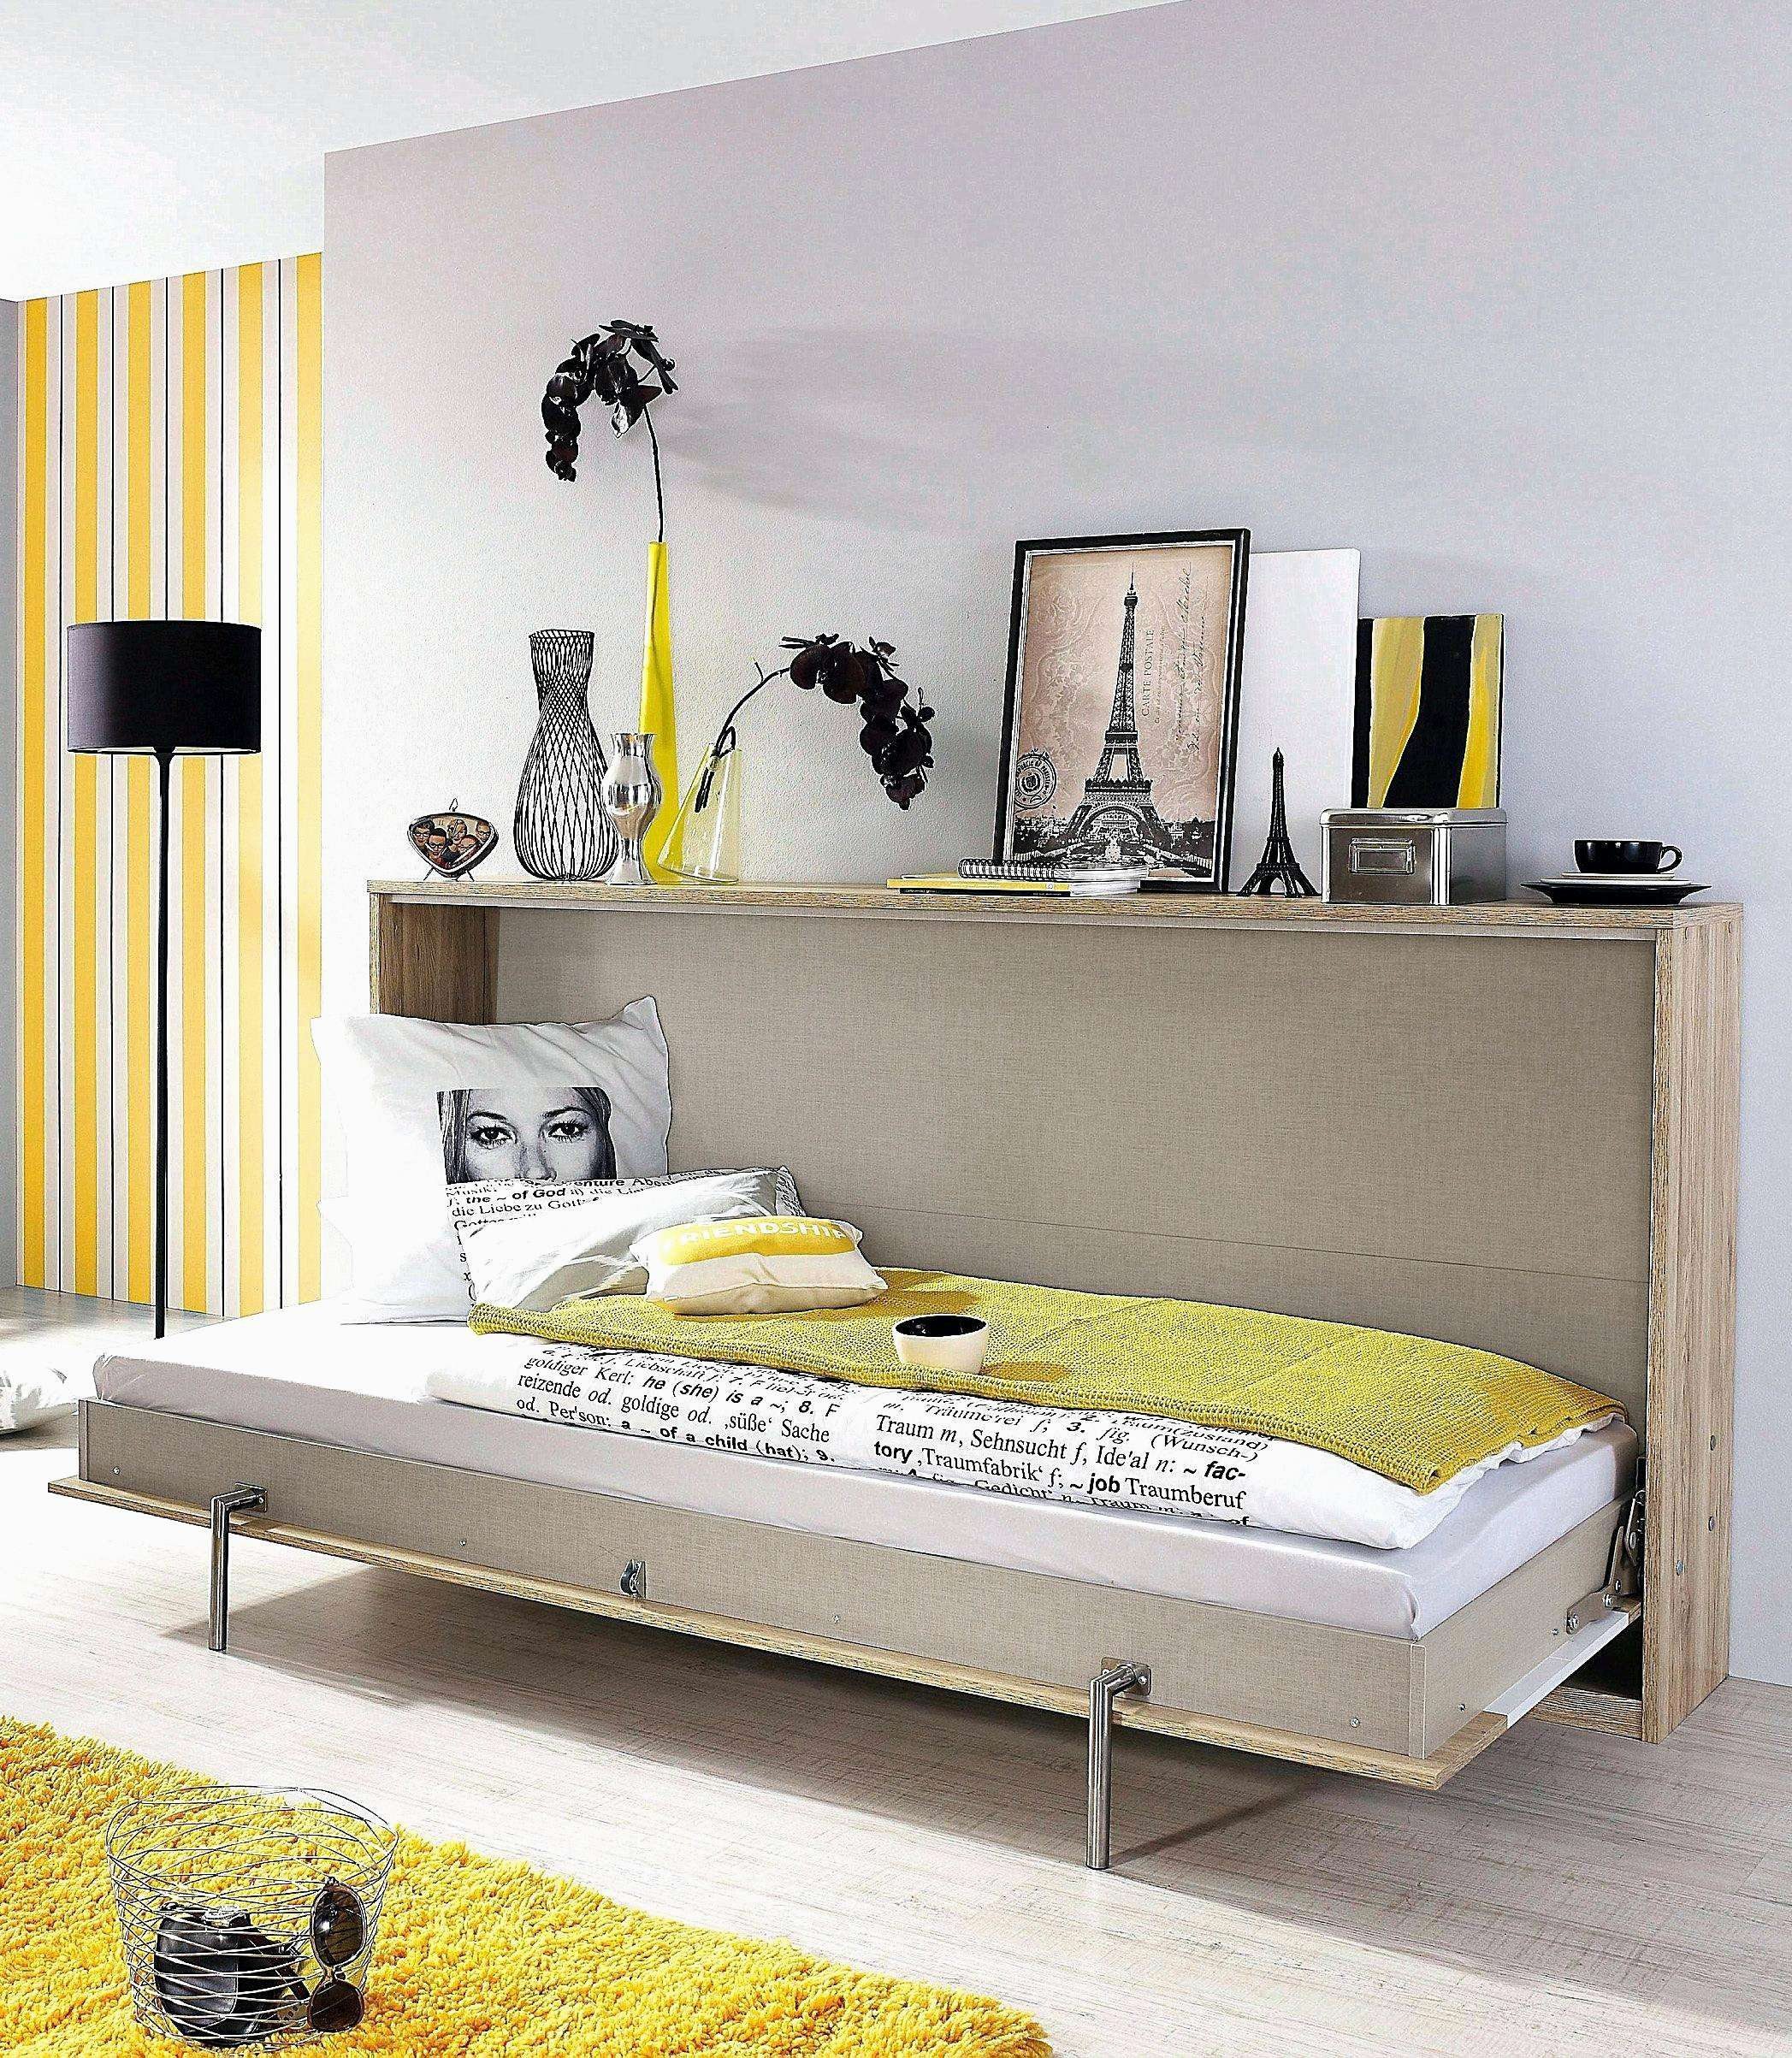 "Tour De Lit 70×140 Le Luxe Reducteur De Lit Avis Mode 160 Cm Inspirant Chest Drawers ""bar"" In"